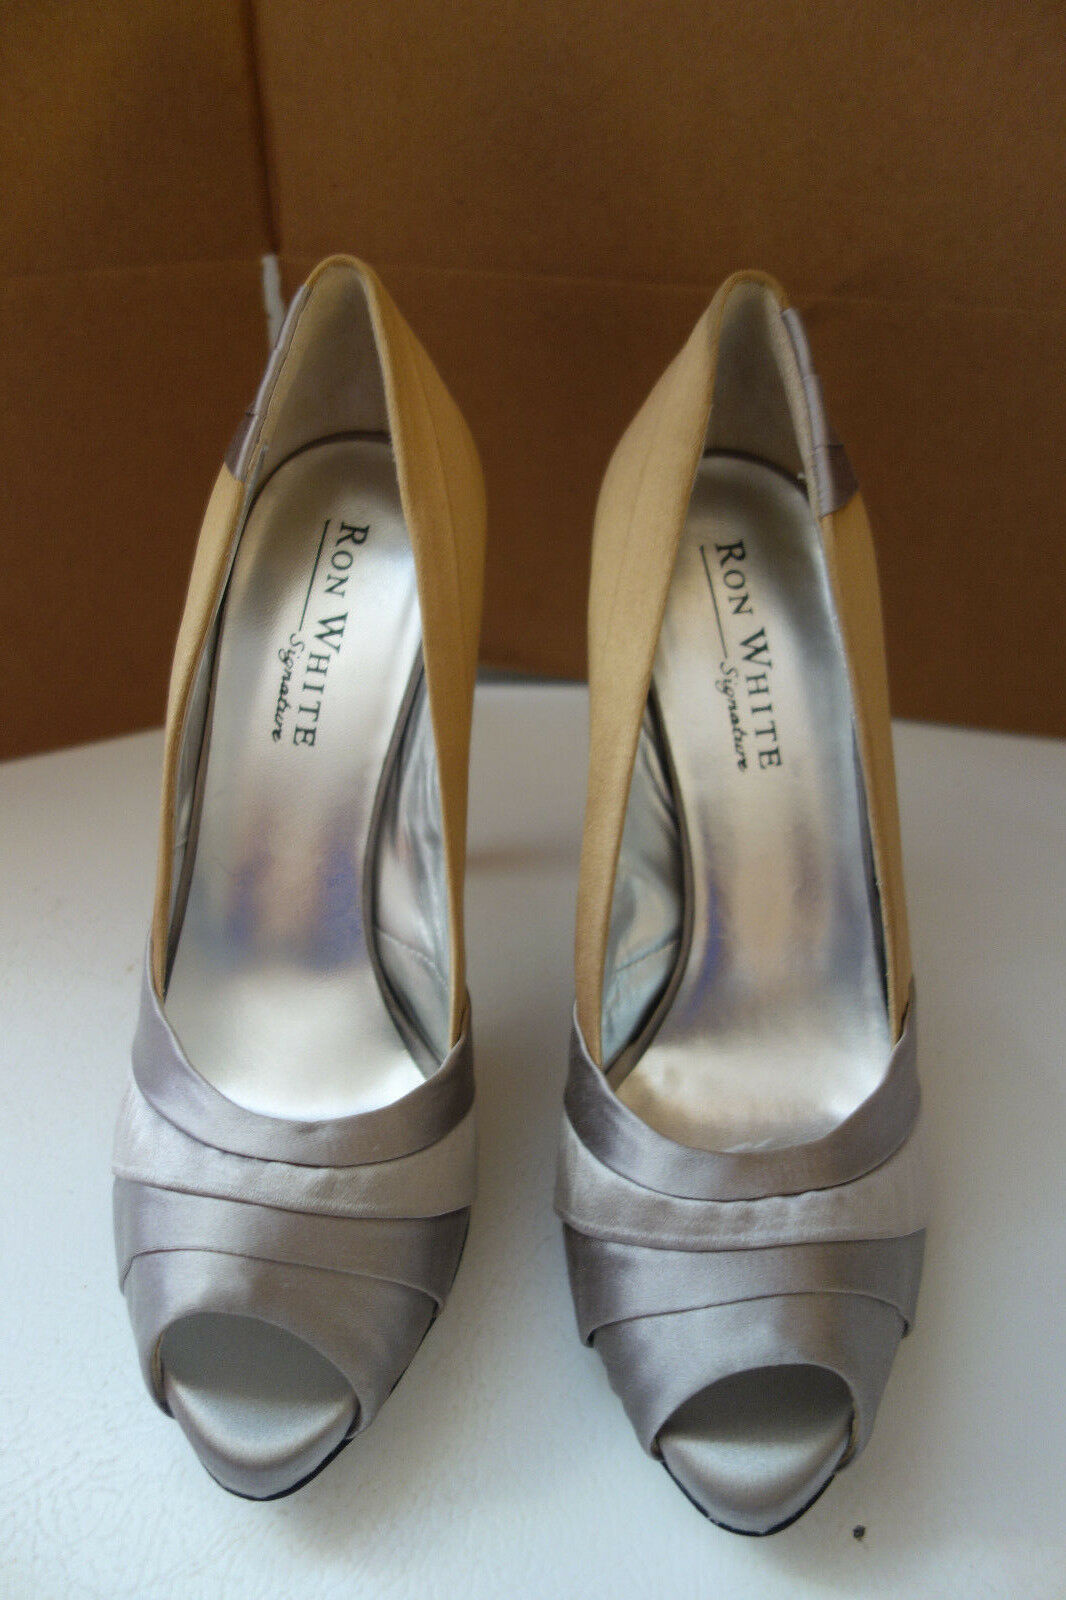 Ron White Signature All Day Hells Gold/Pewter Satin 'Jasmyn' Pumps. Size 9 Nwot